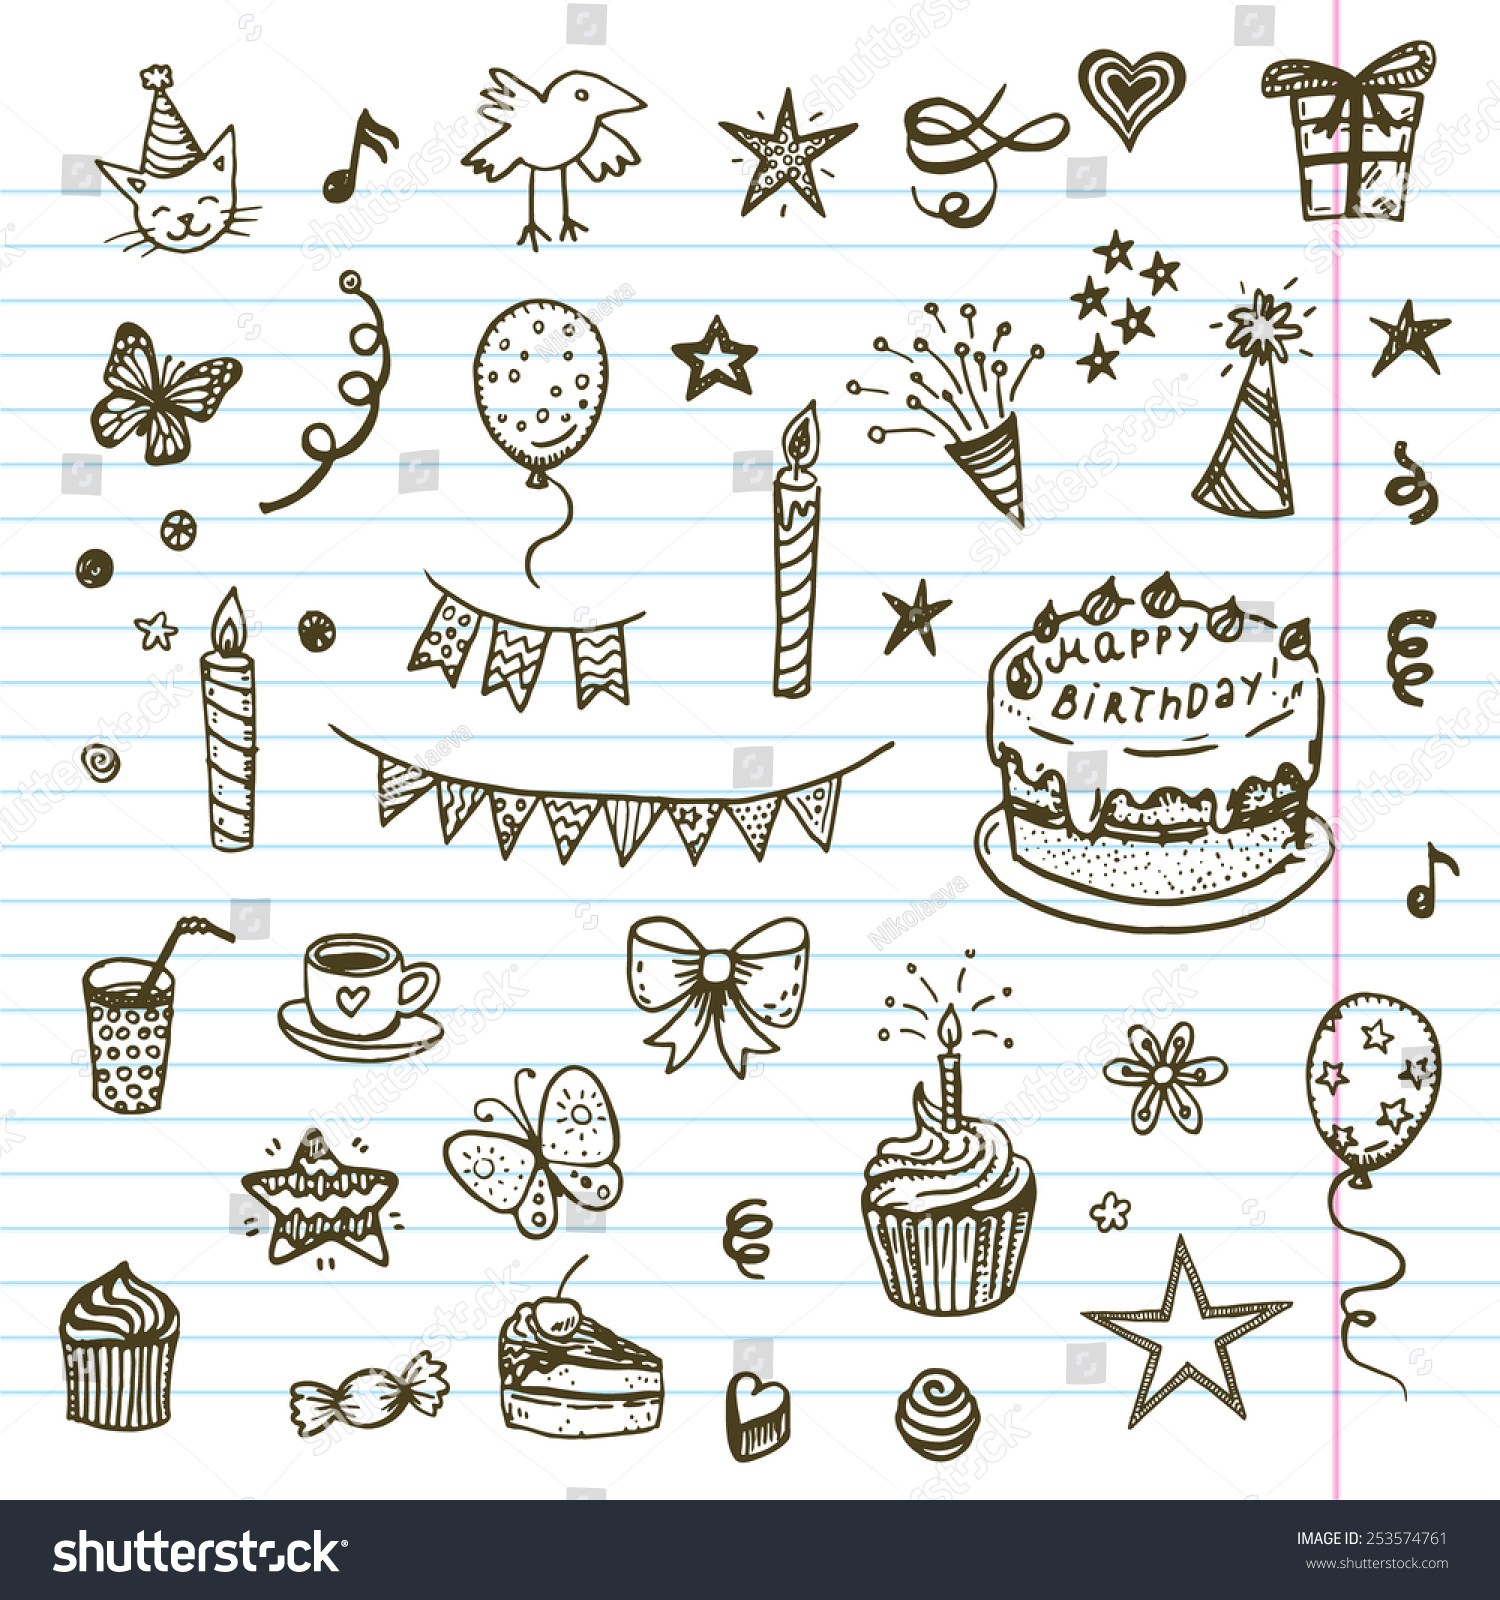 Birthday elements hand drawn set birthday stock vector 253574761 birthday elements hand drawn set with birthday cake balloons gift and festive attributes sciox Choice Image